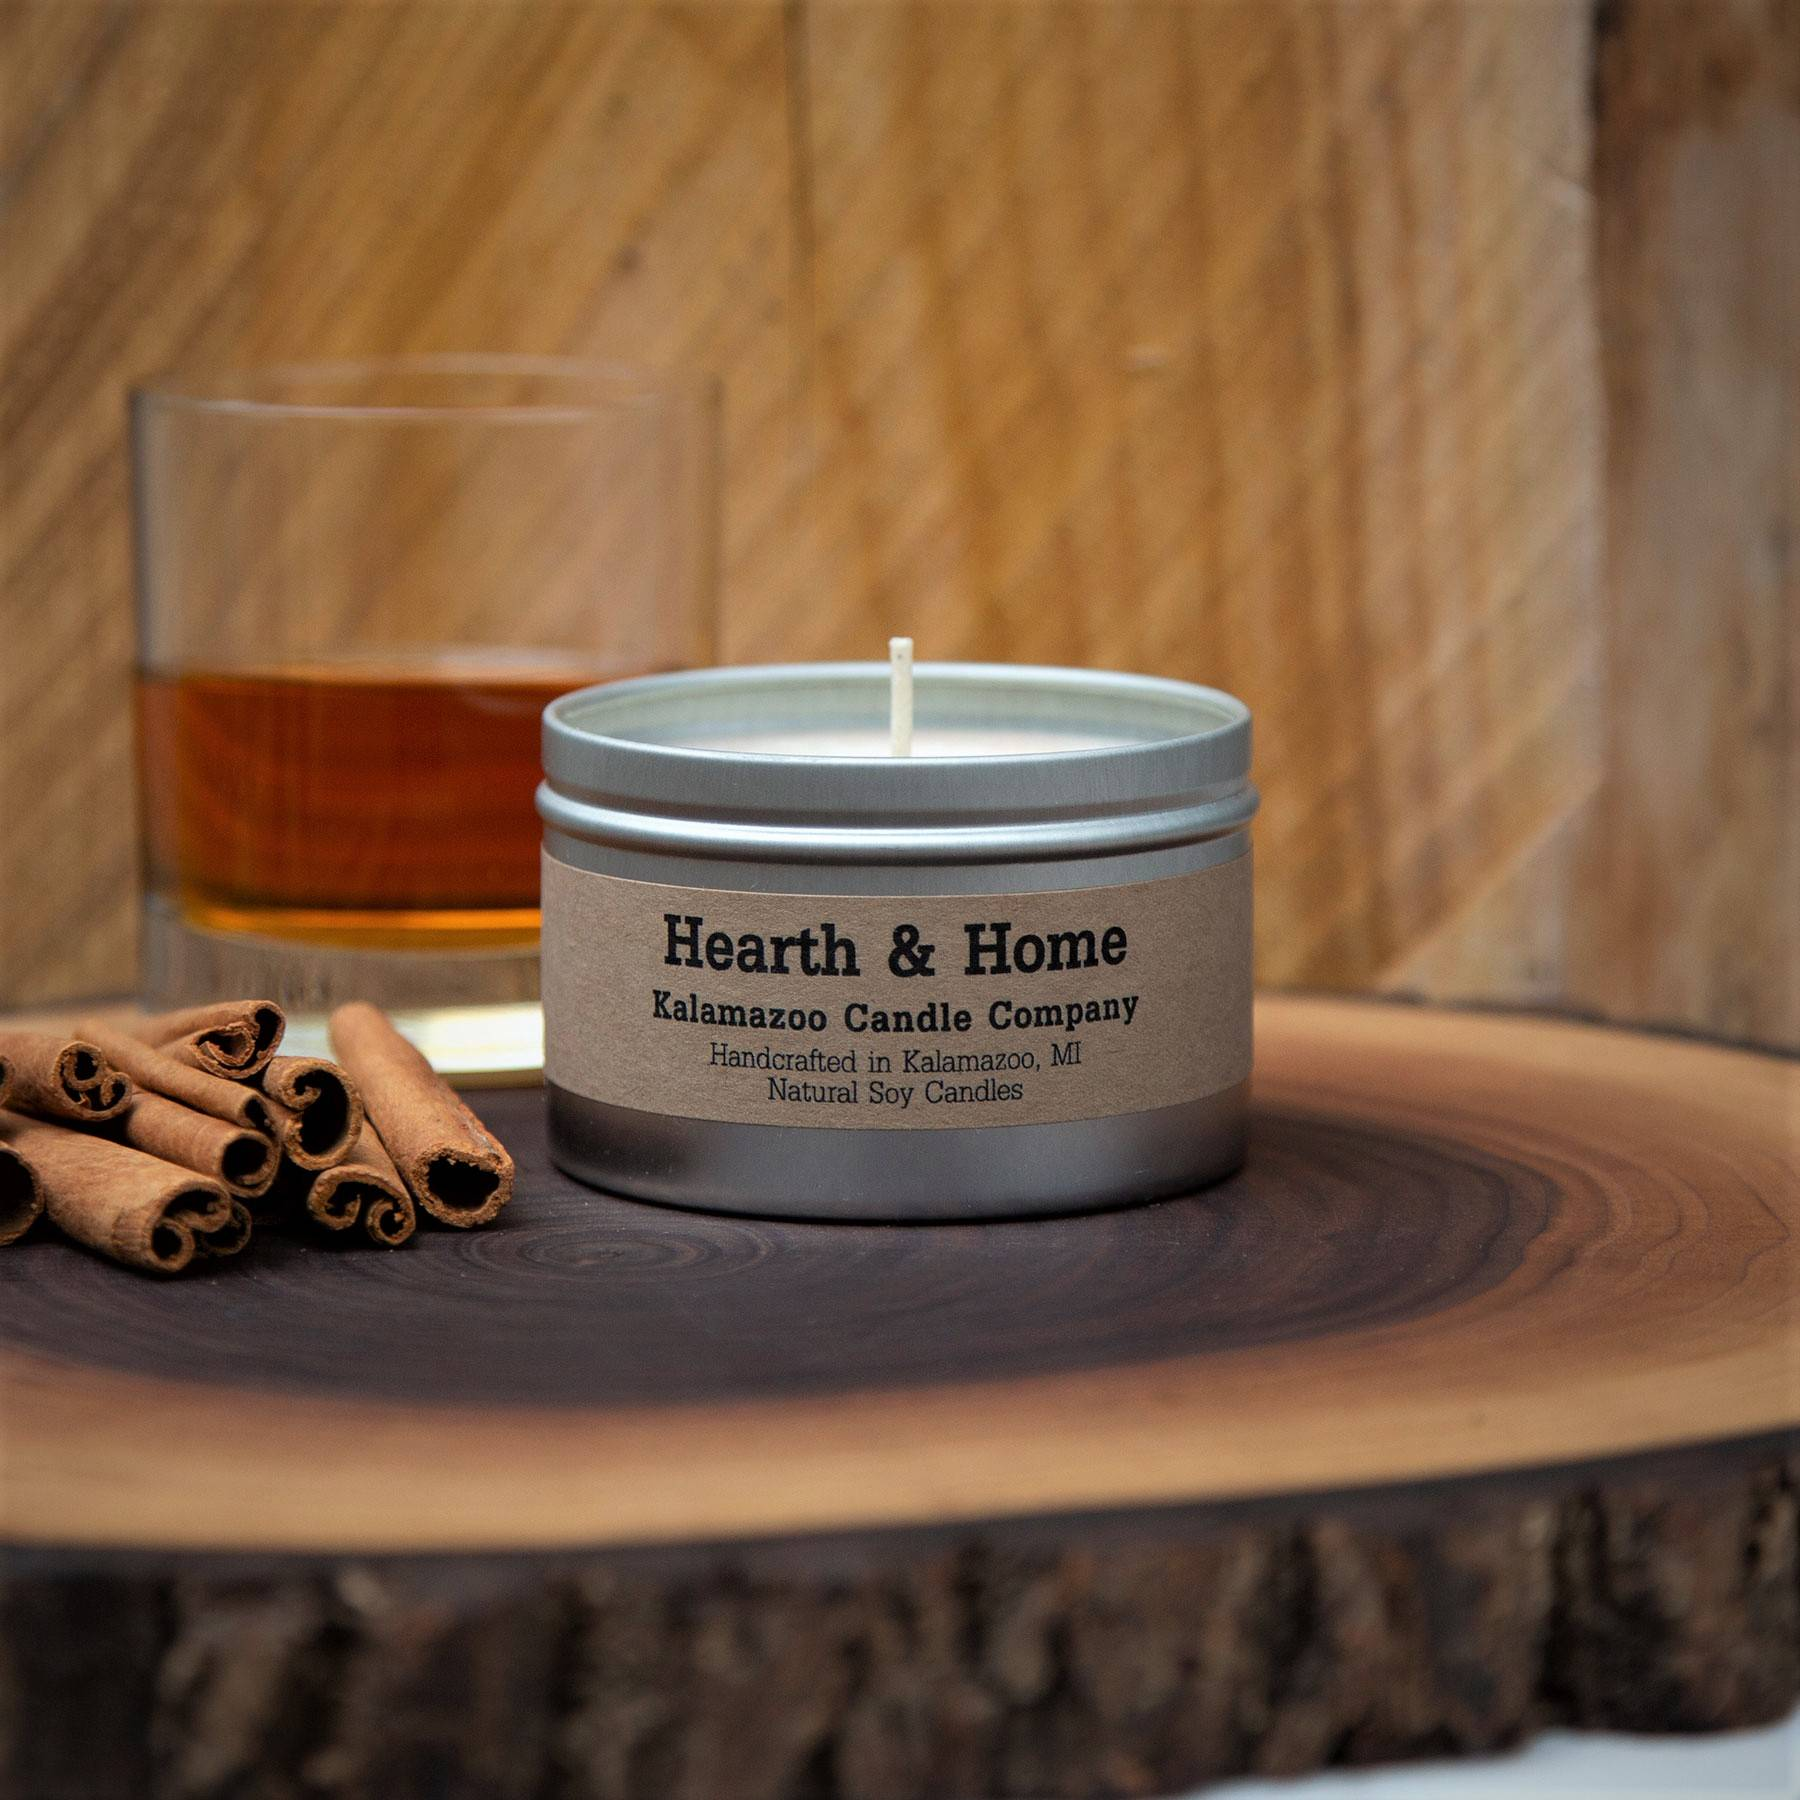 Hearth and Home natural soy wax scented candle